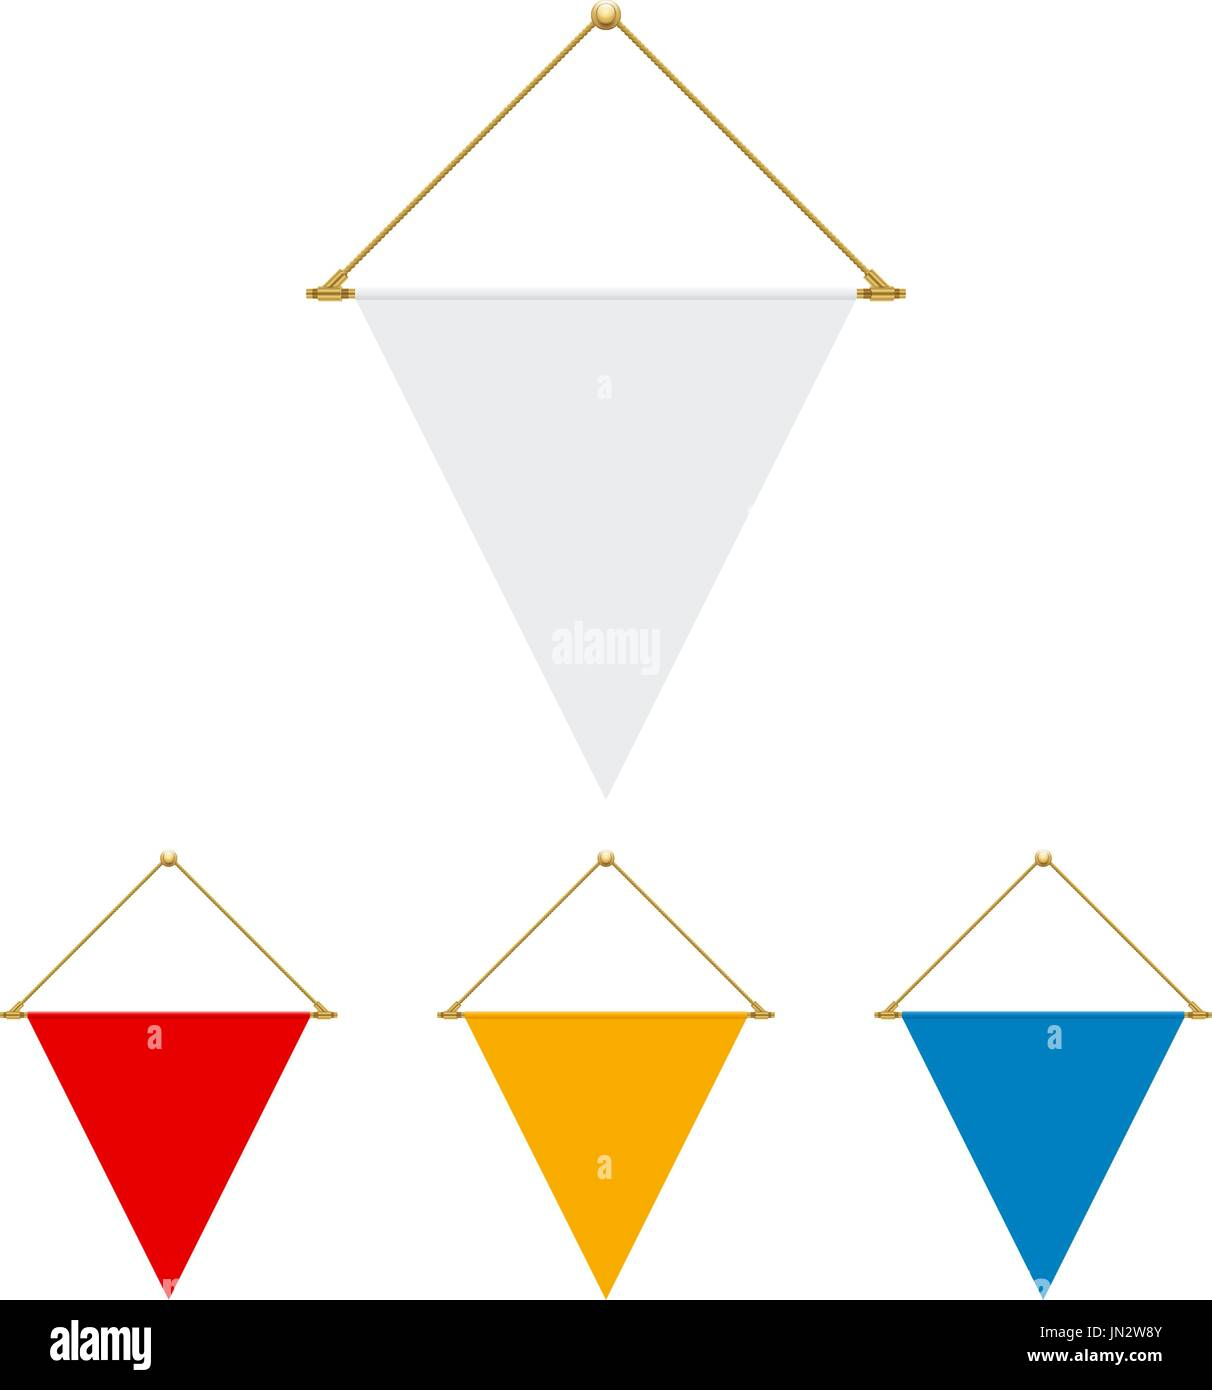 For this time, we want to present you with some templates in different and various styles to be the triangle banner template. Flag Design Blank Triangle Flag Hanging Isolated Template For Your Designs Vector Illustration Stock Vector Image Art Alamy